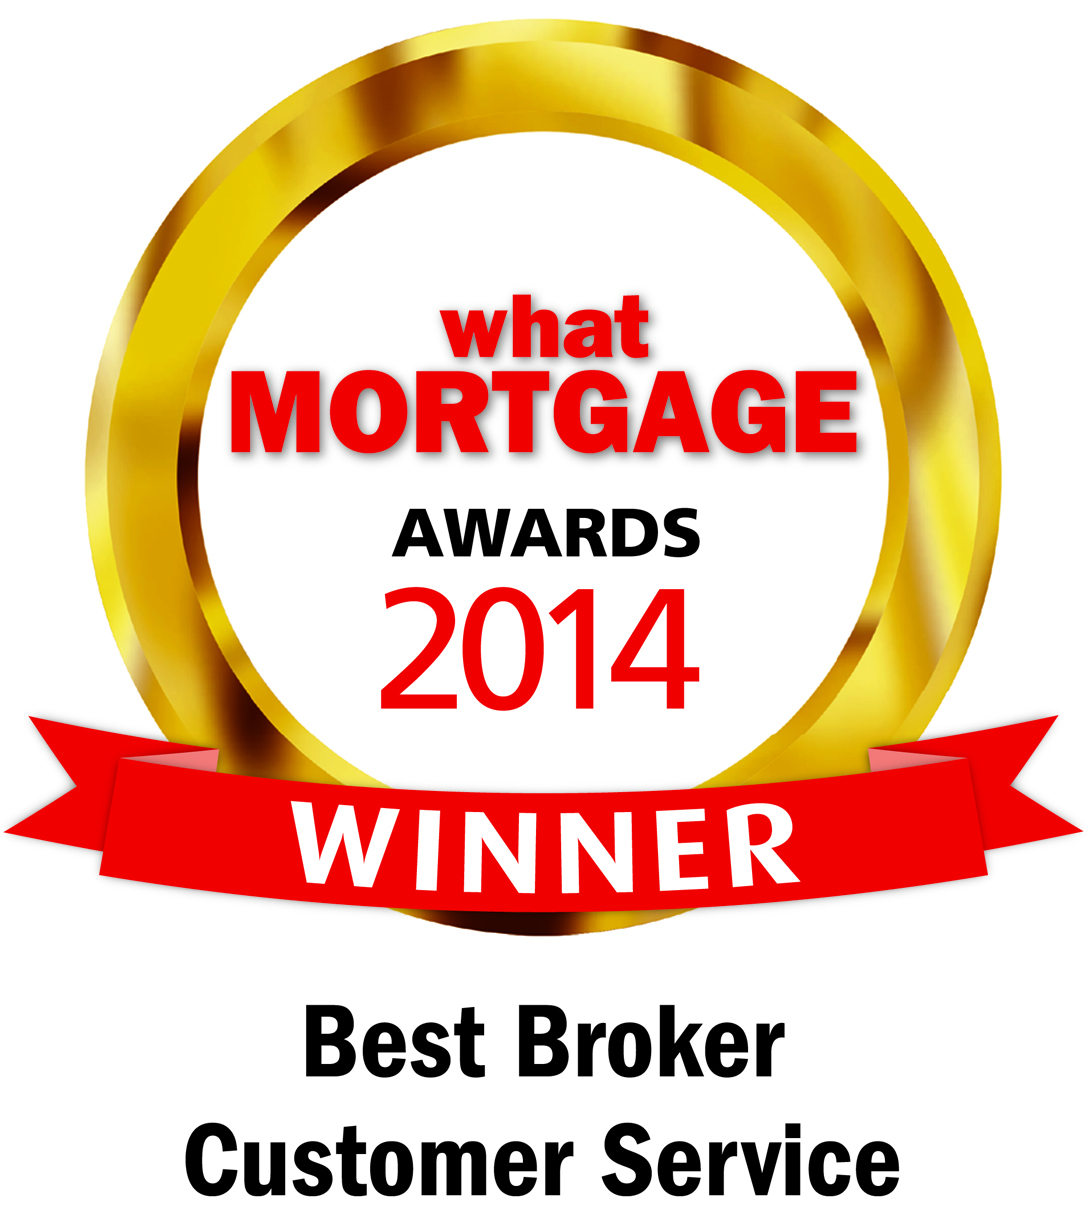 Best Broker Customer Service - What Mortgage Awards 2014